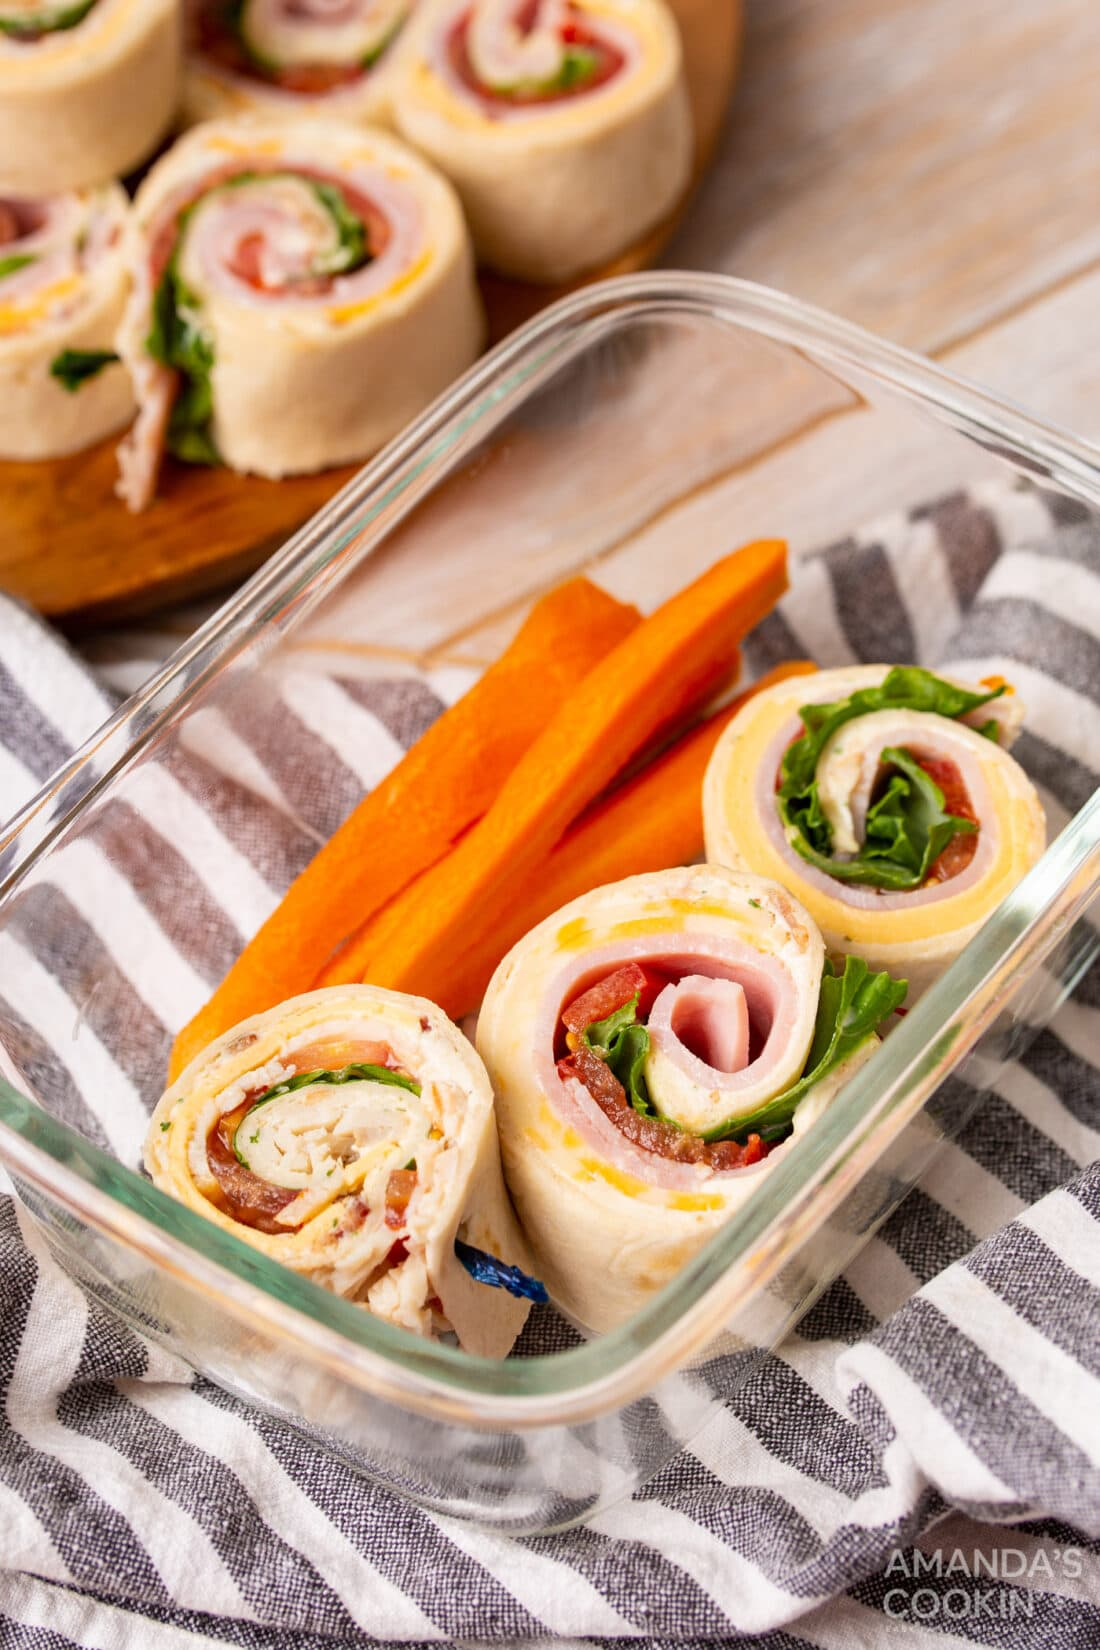 Pinwheel Sandwiches in a lunch container with carrots